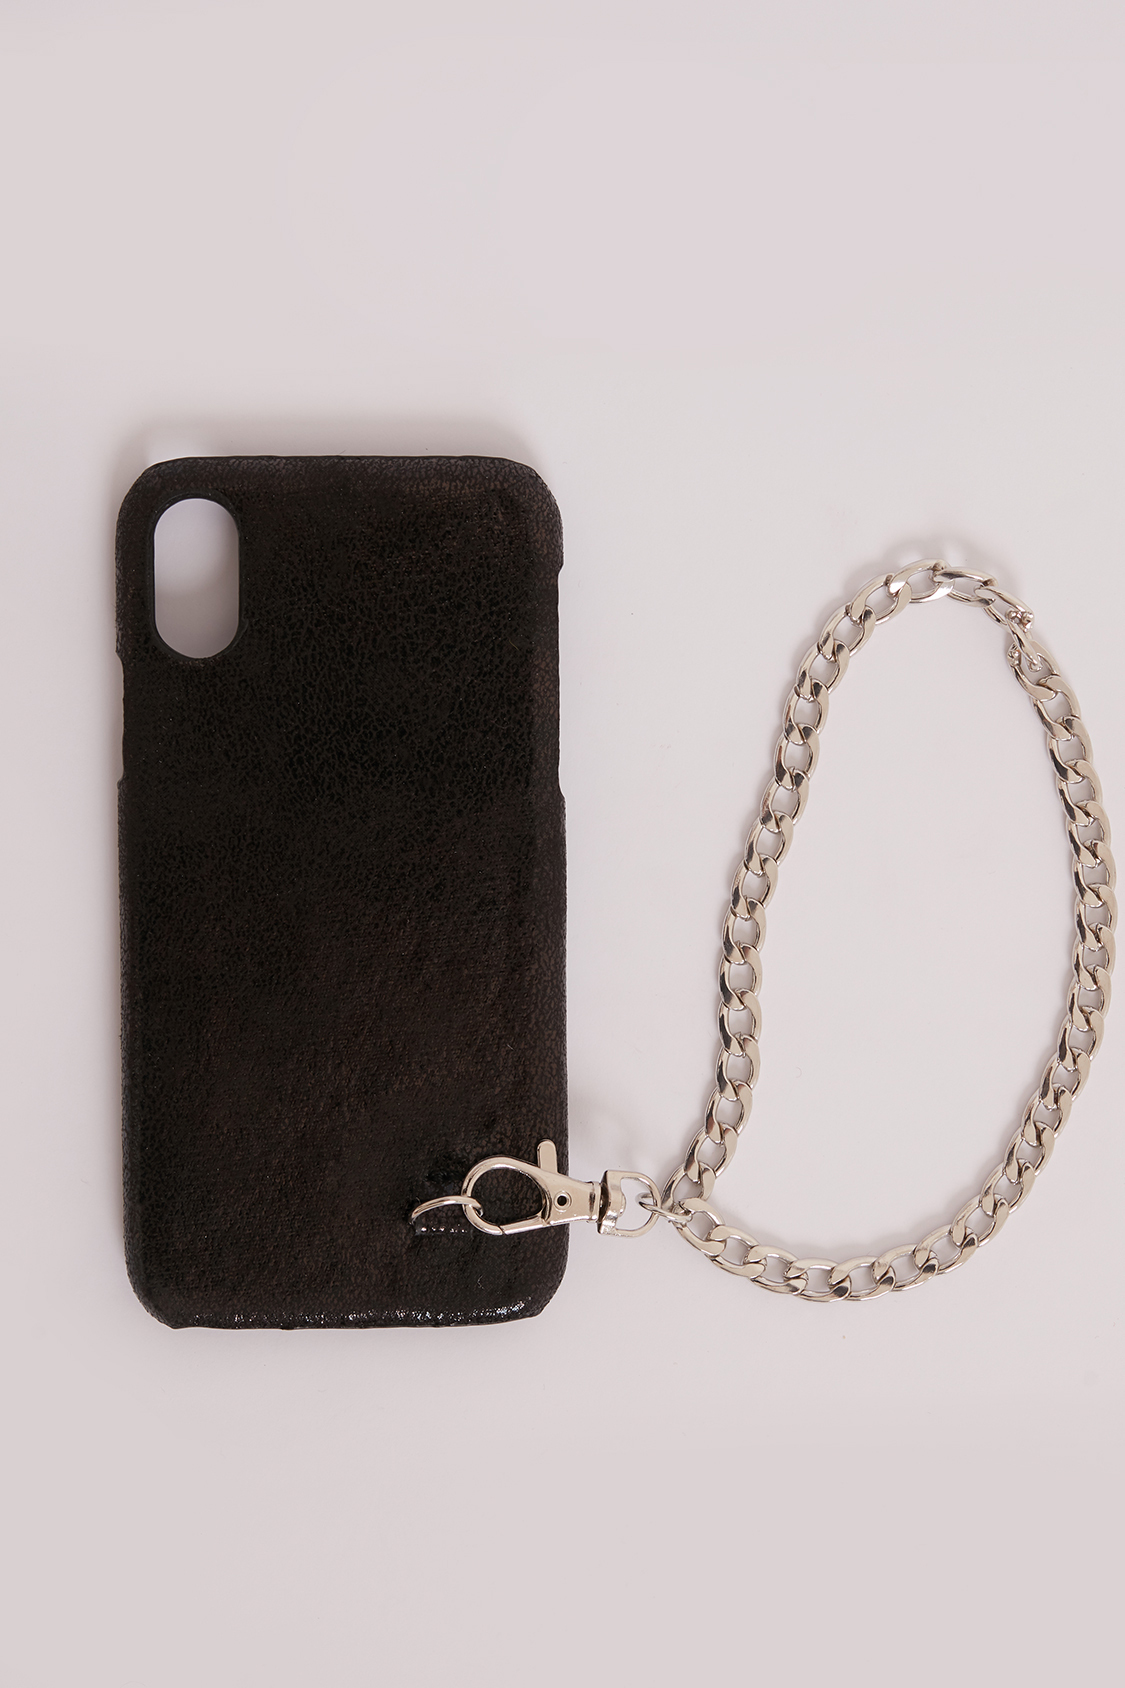 Chain phone case - iPhone X